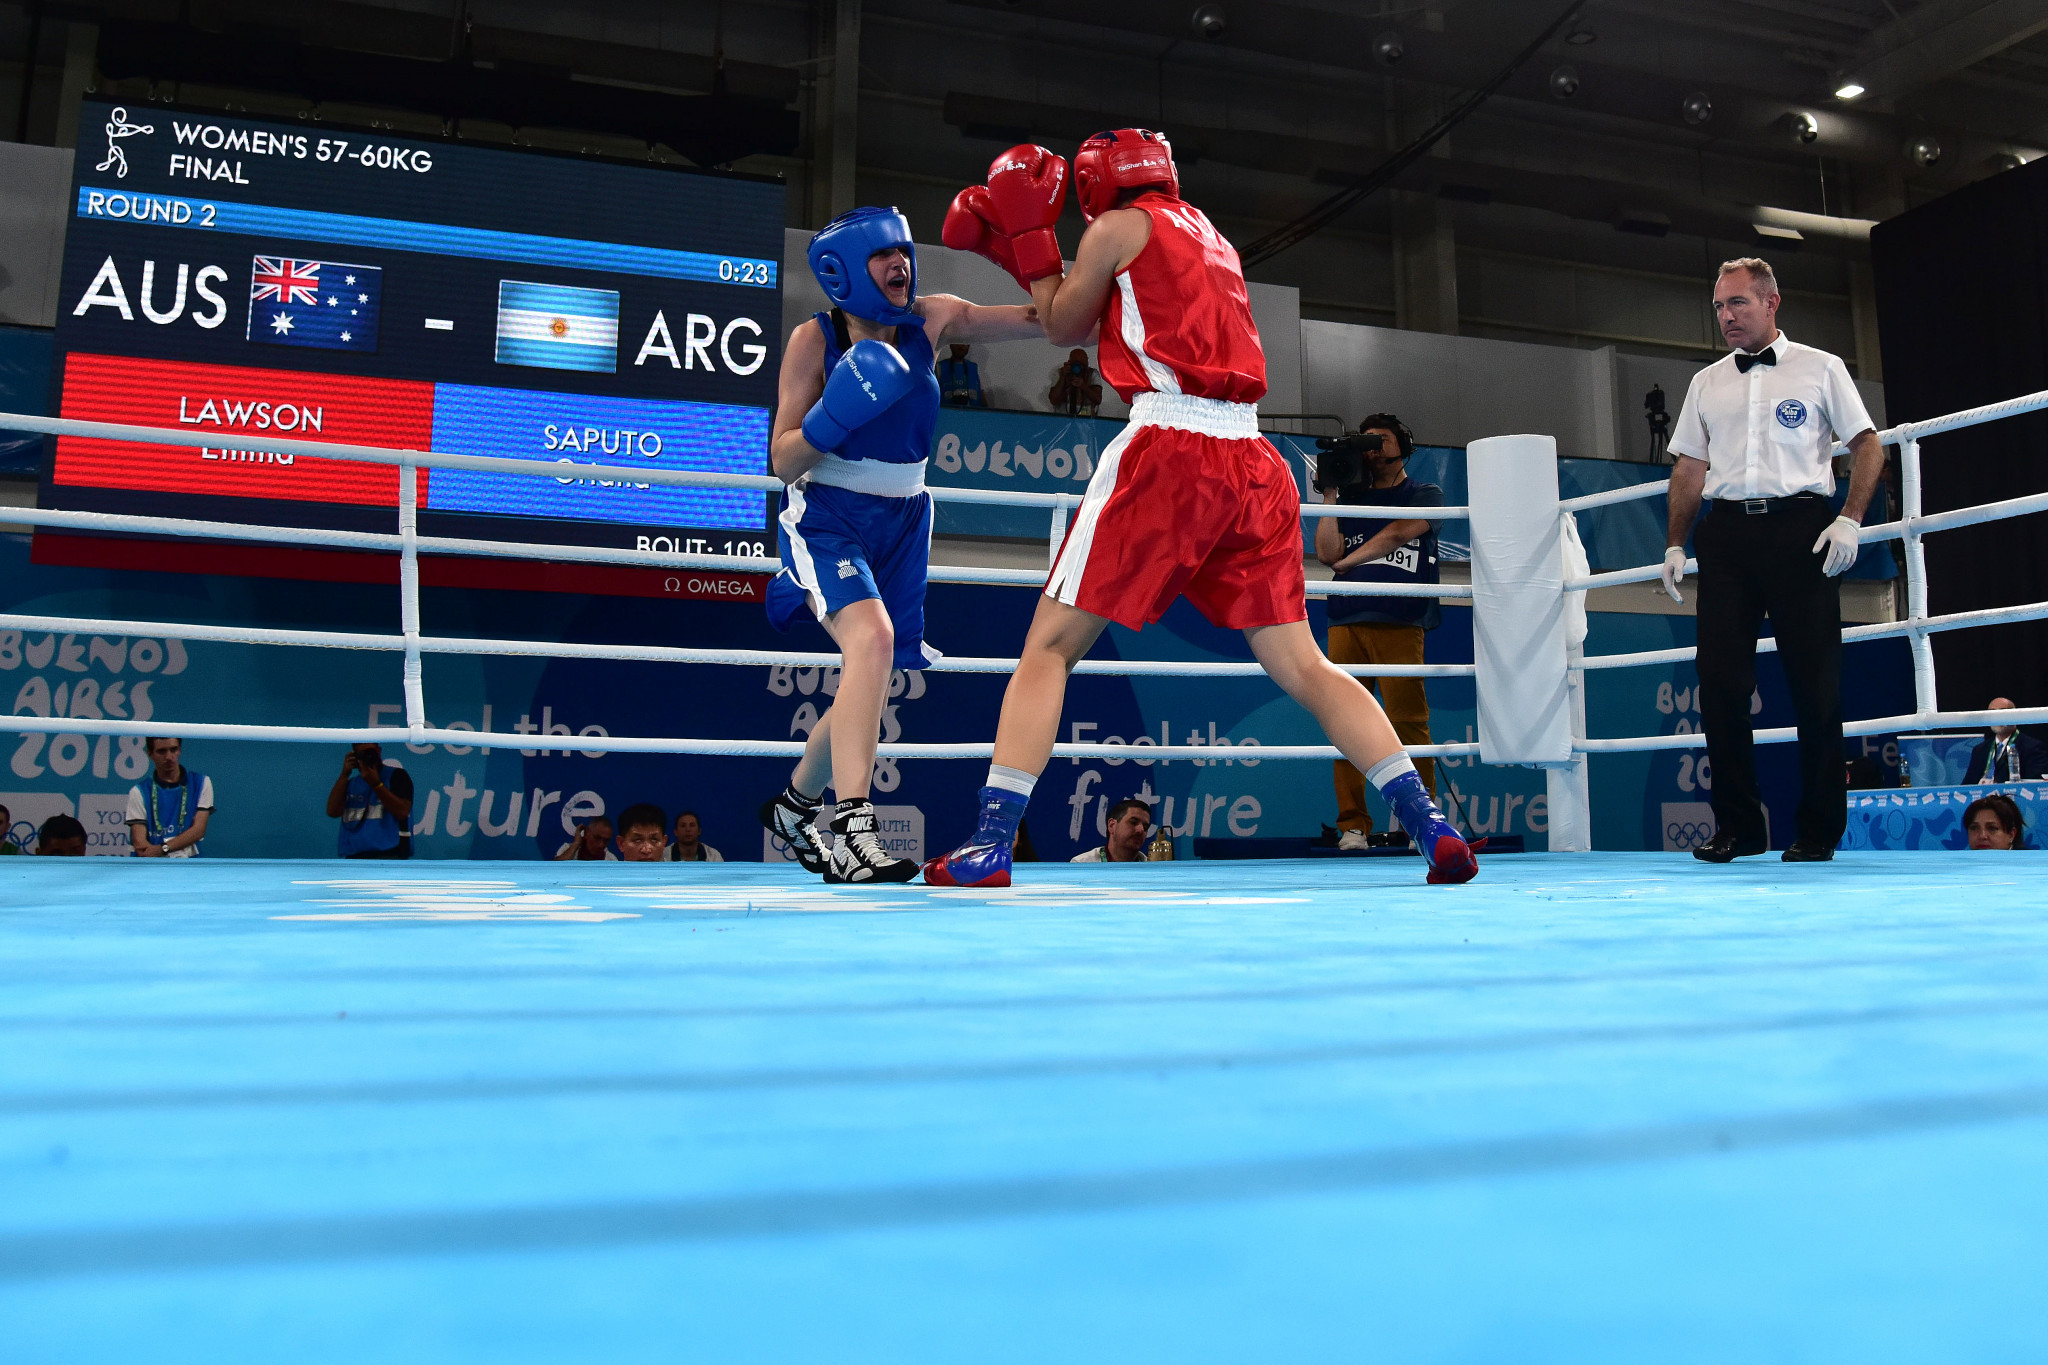 The boxing event at Buenos Aires 2018 had to be overseen by an independent auditor ©Getty Images